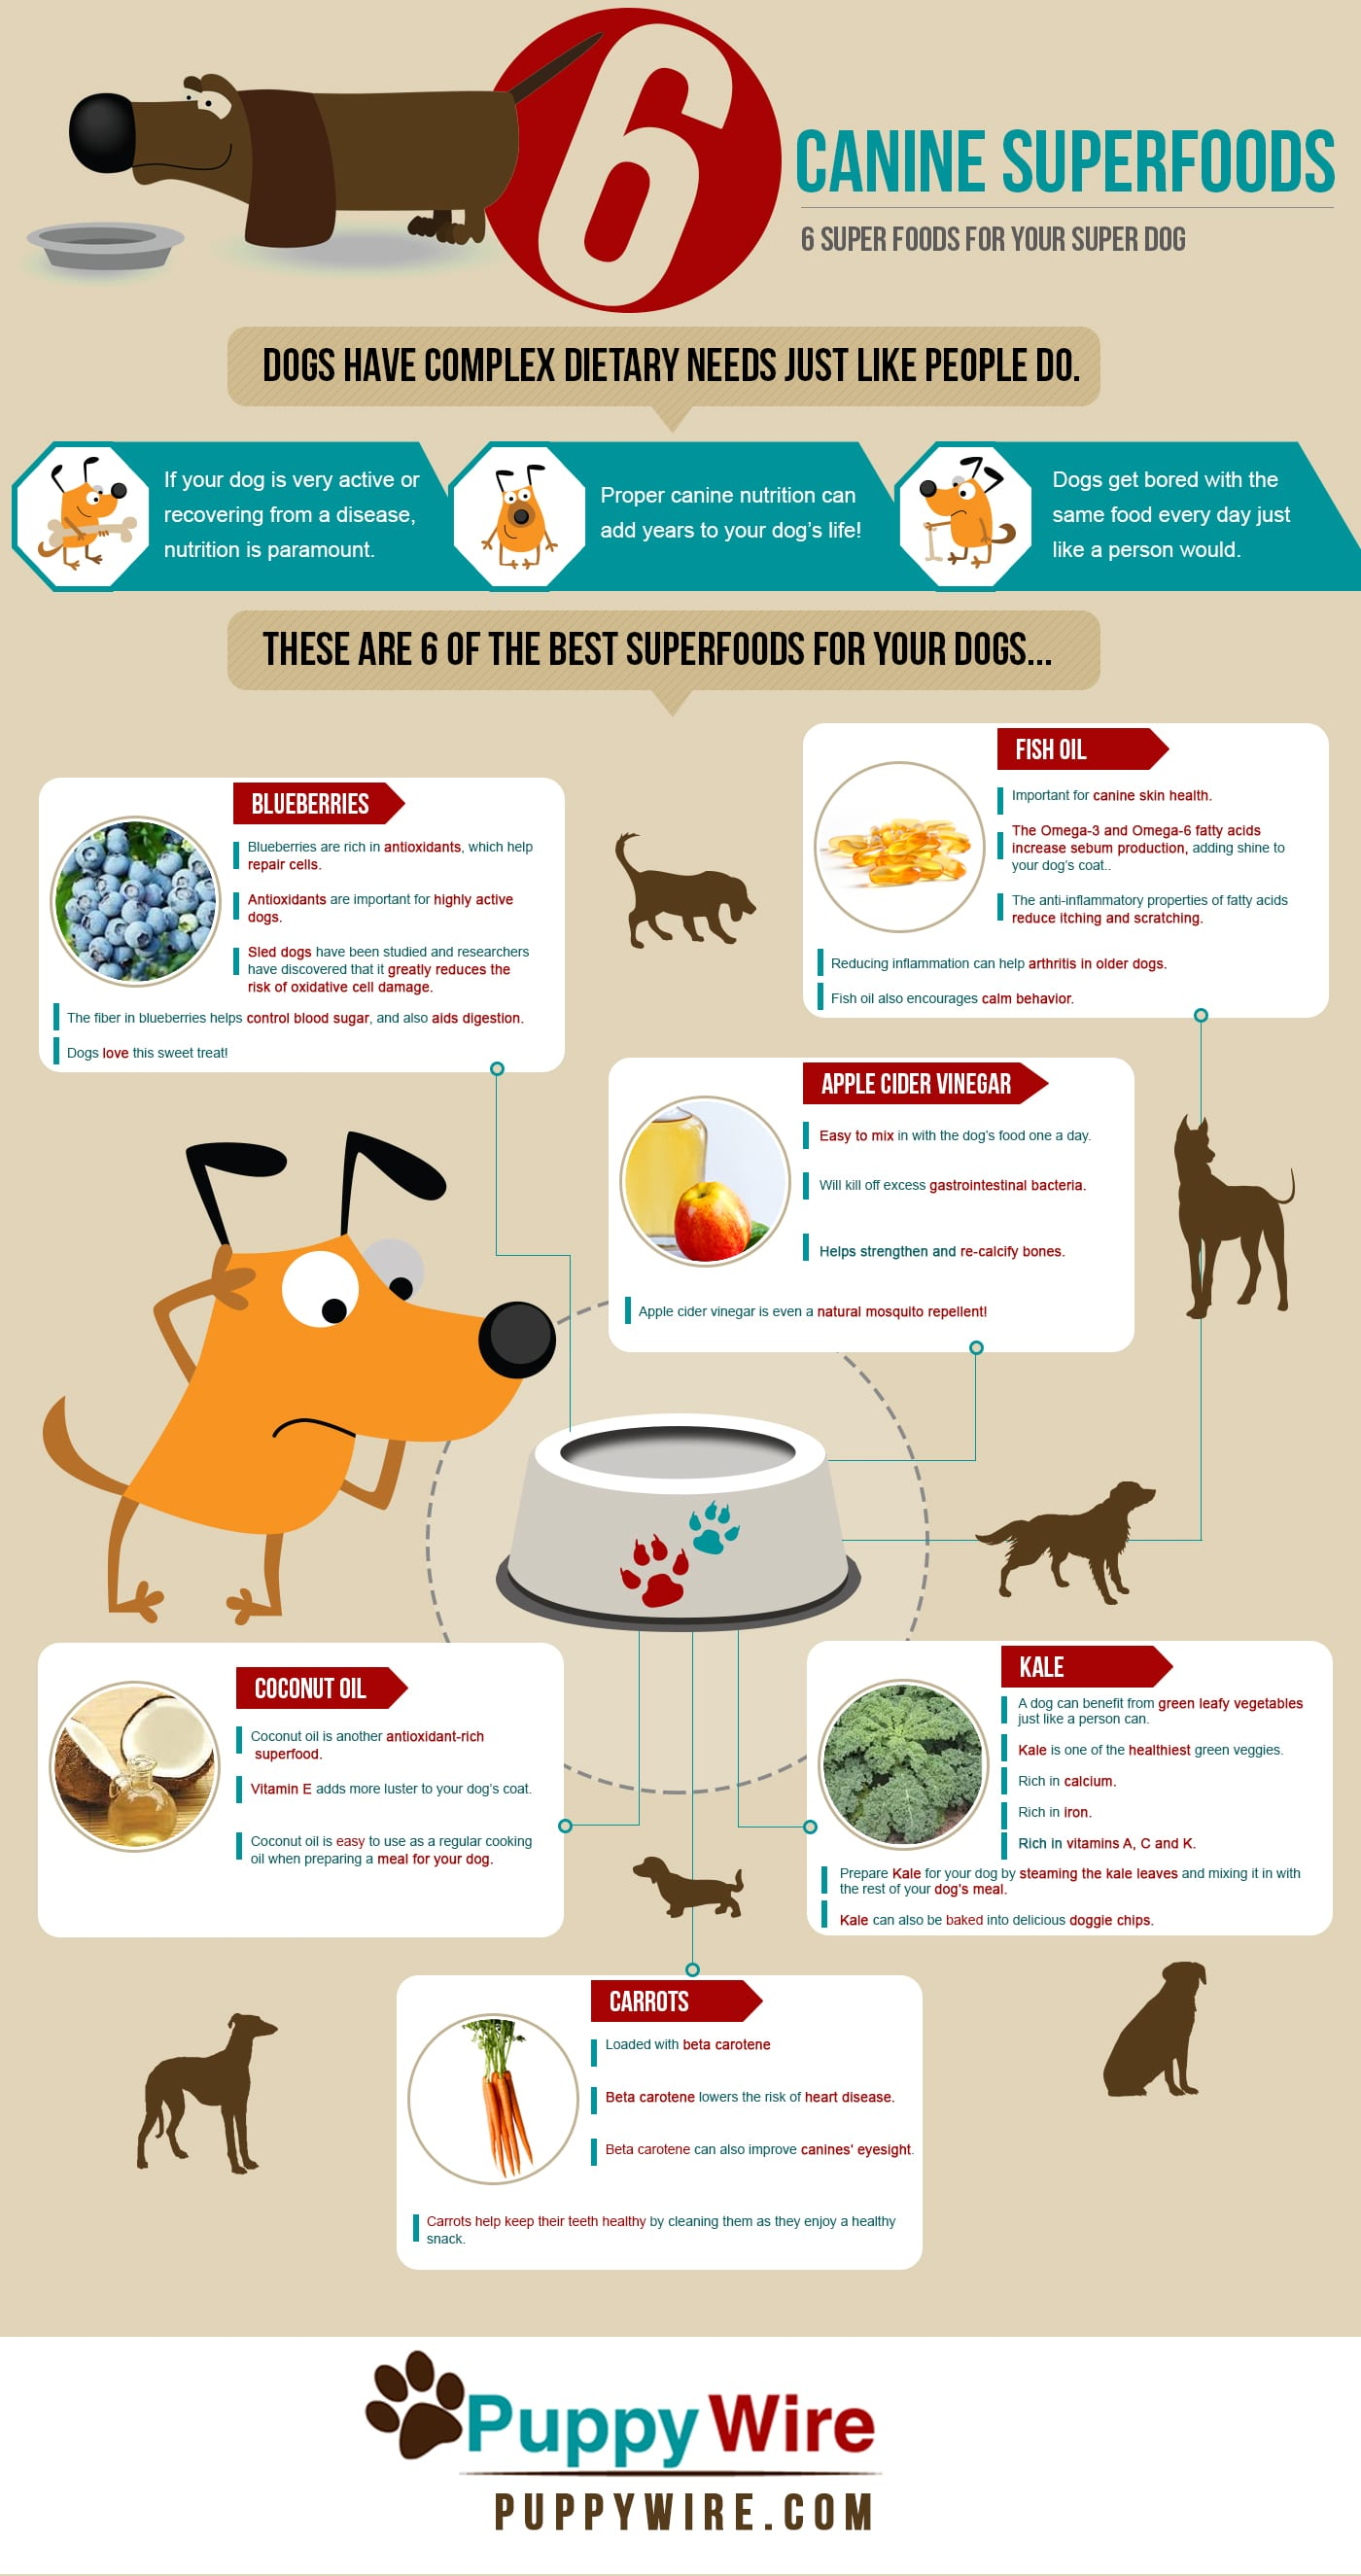 6 Superfoods for Your Super Dog Infographic